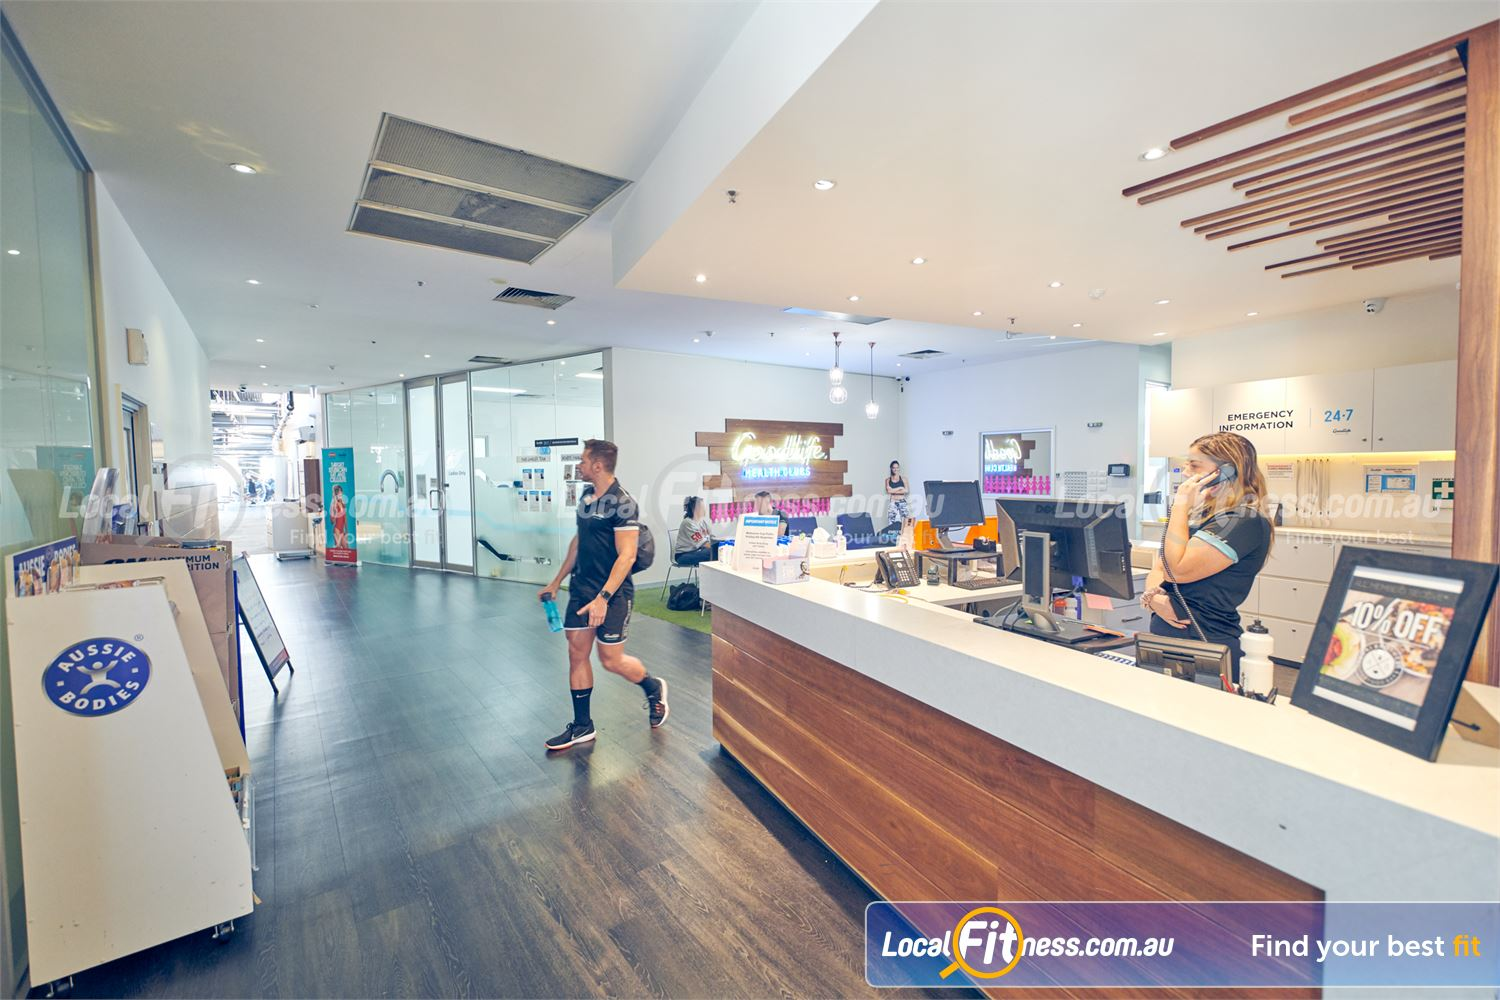 Goodlife Health Clubs Near Windsor Our Prahan team will welcome you and are ready to help you reach your goals.